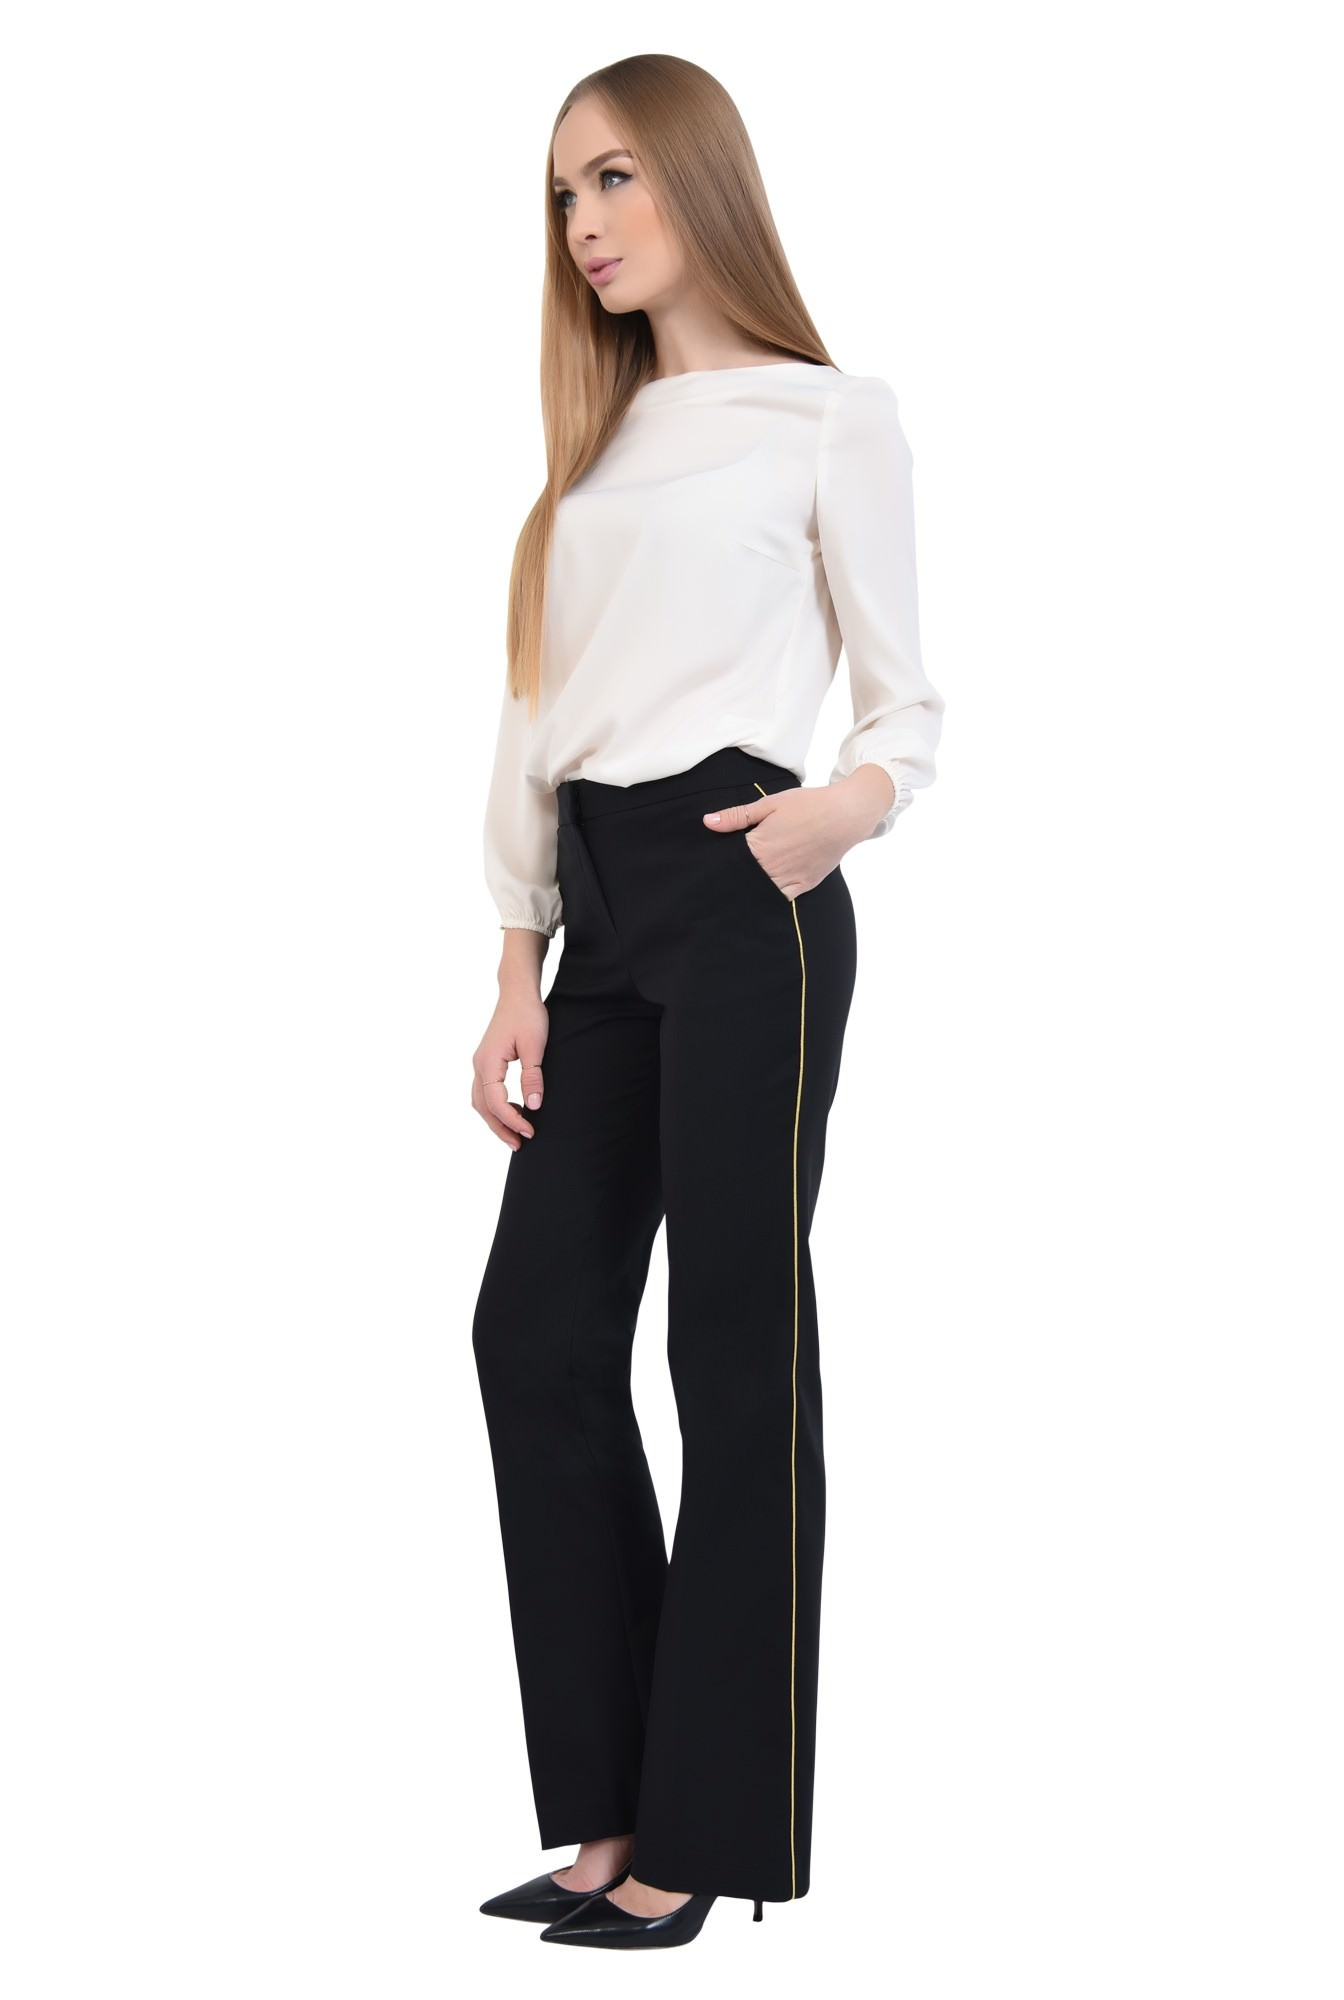 PANTALON OFFICE PT 192-NEGRU